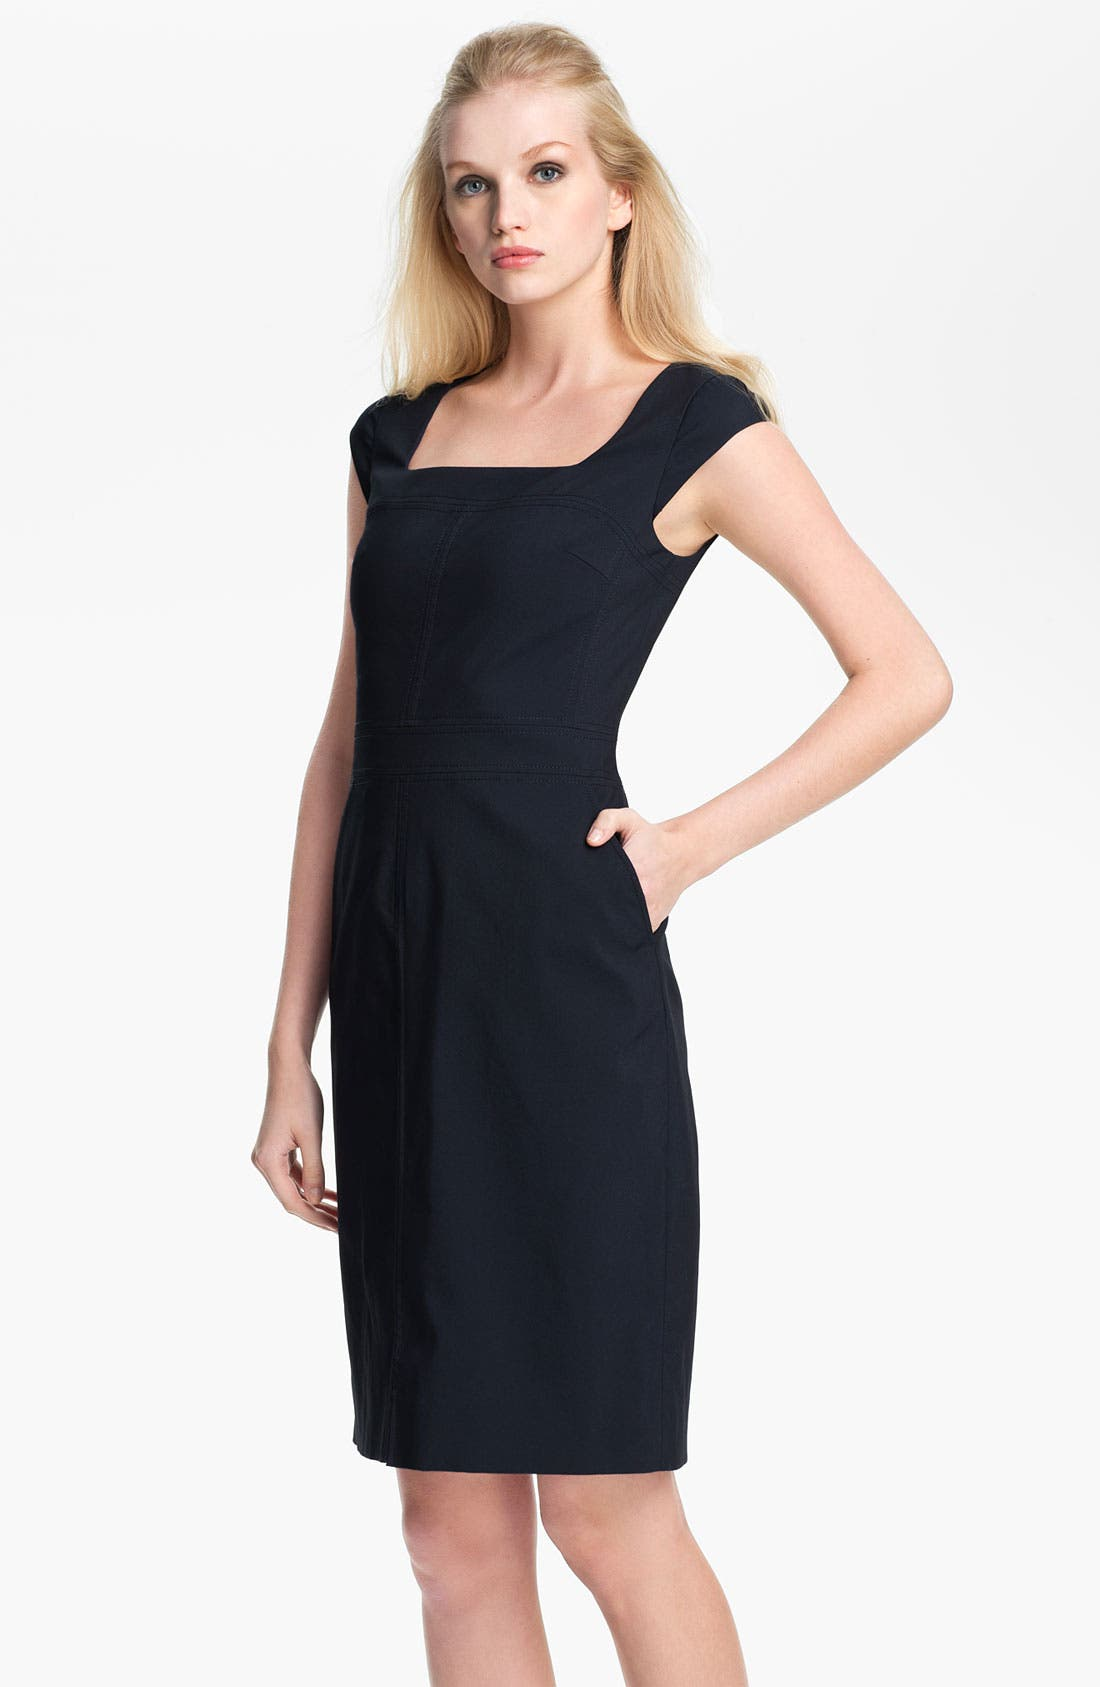 Alternate Image 1 Selected - Tory Burch 'Callie' Cotton Blend Sheath Dress